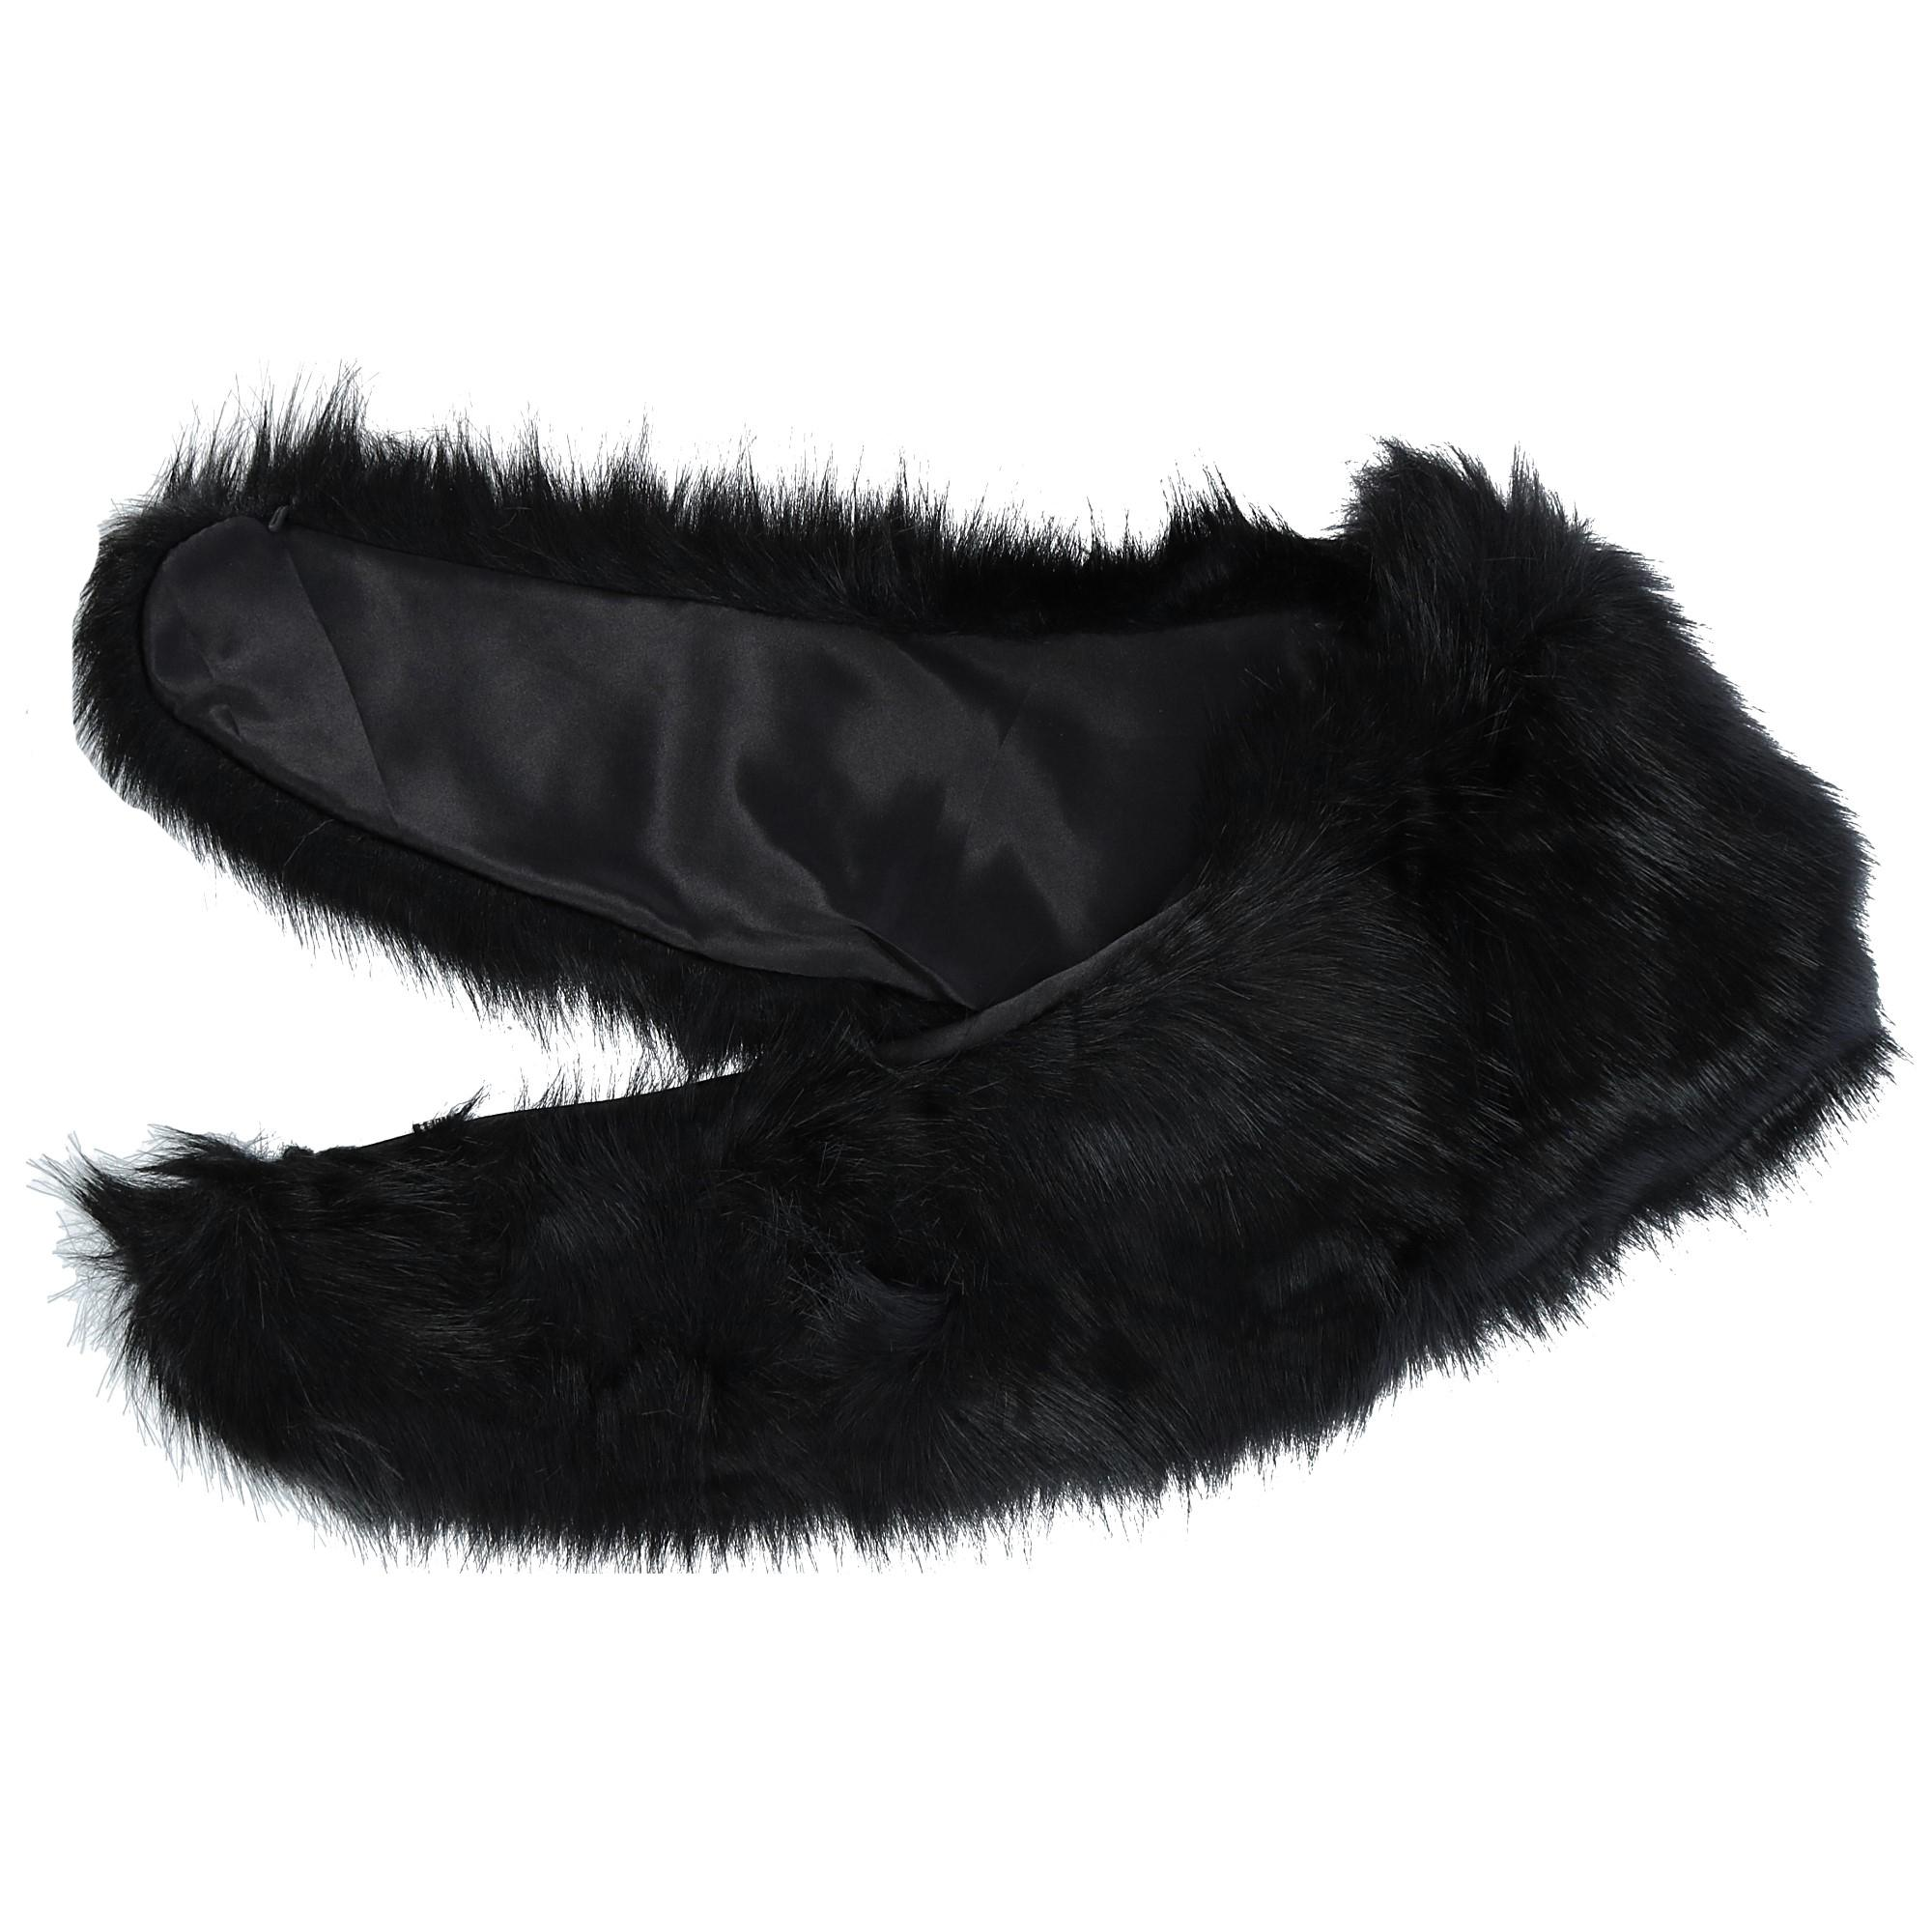 CTM Women's Easton Faux Fur Collar with Hook Closure - image 2 of 3